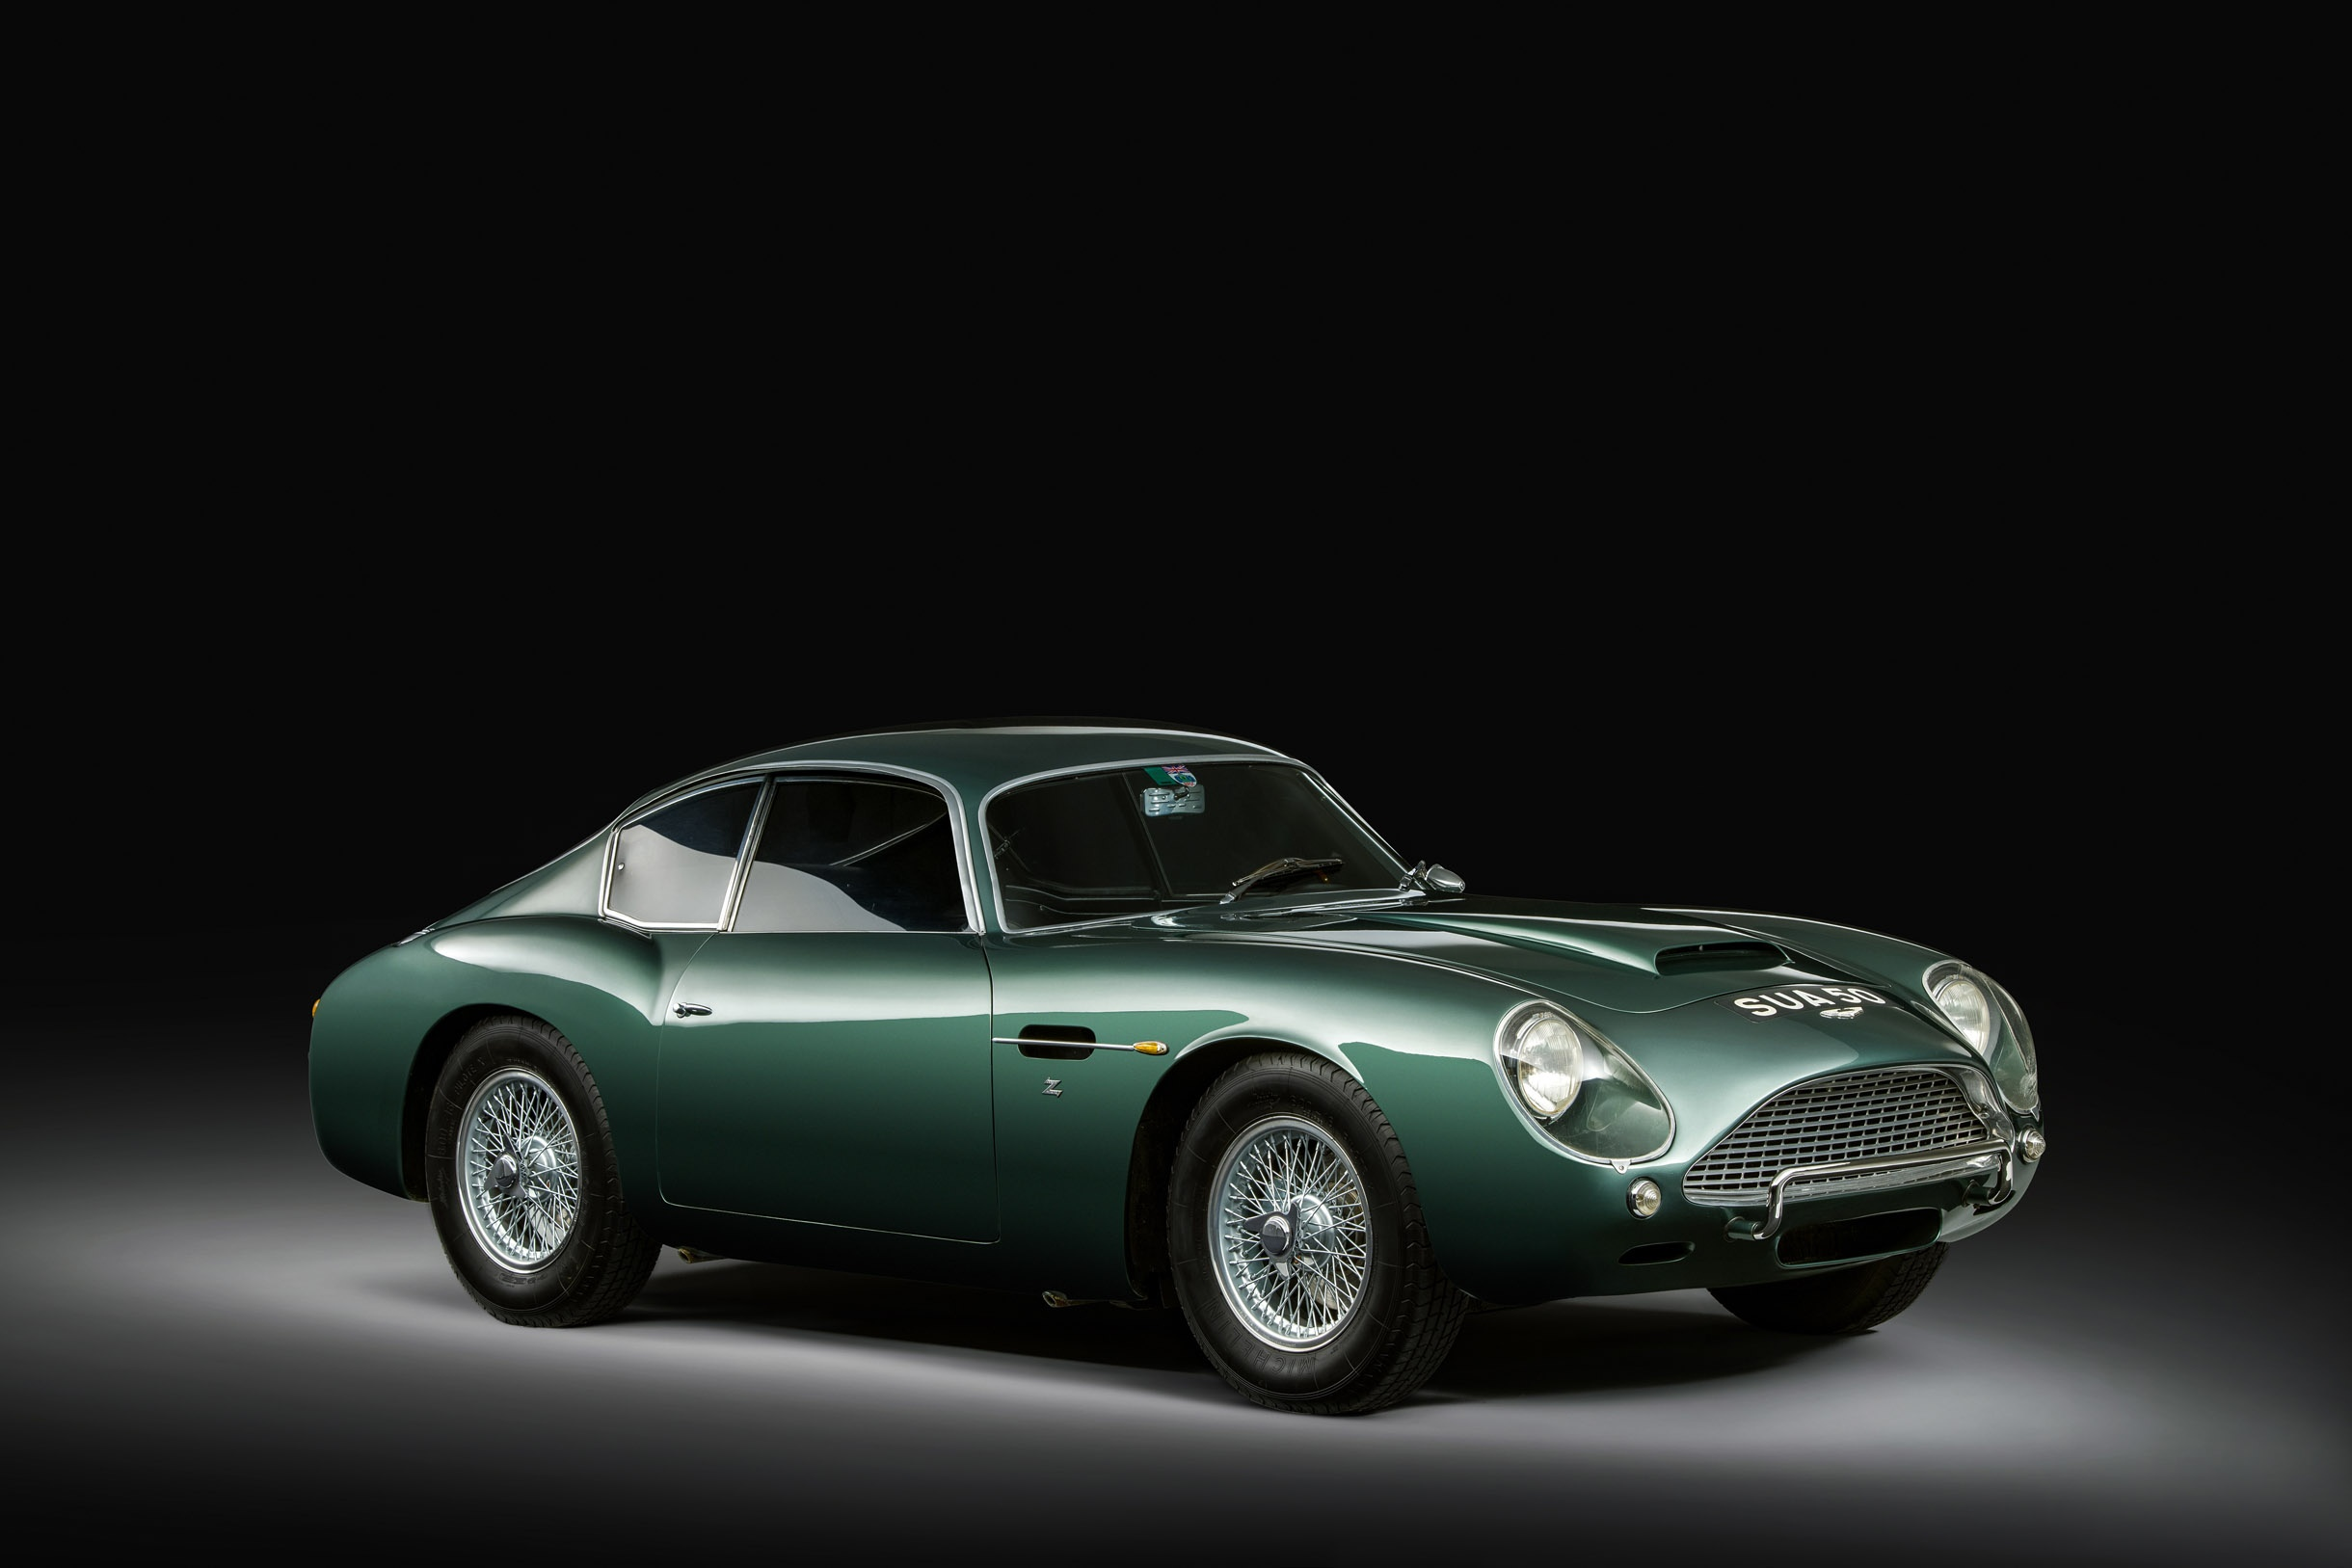 1961 Aston Martin Db4 Gt Vintage Car For Sale